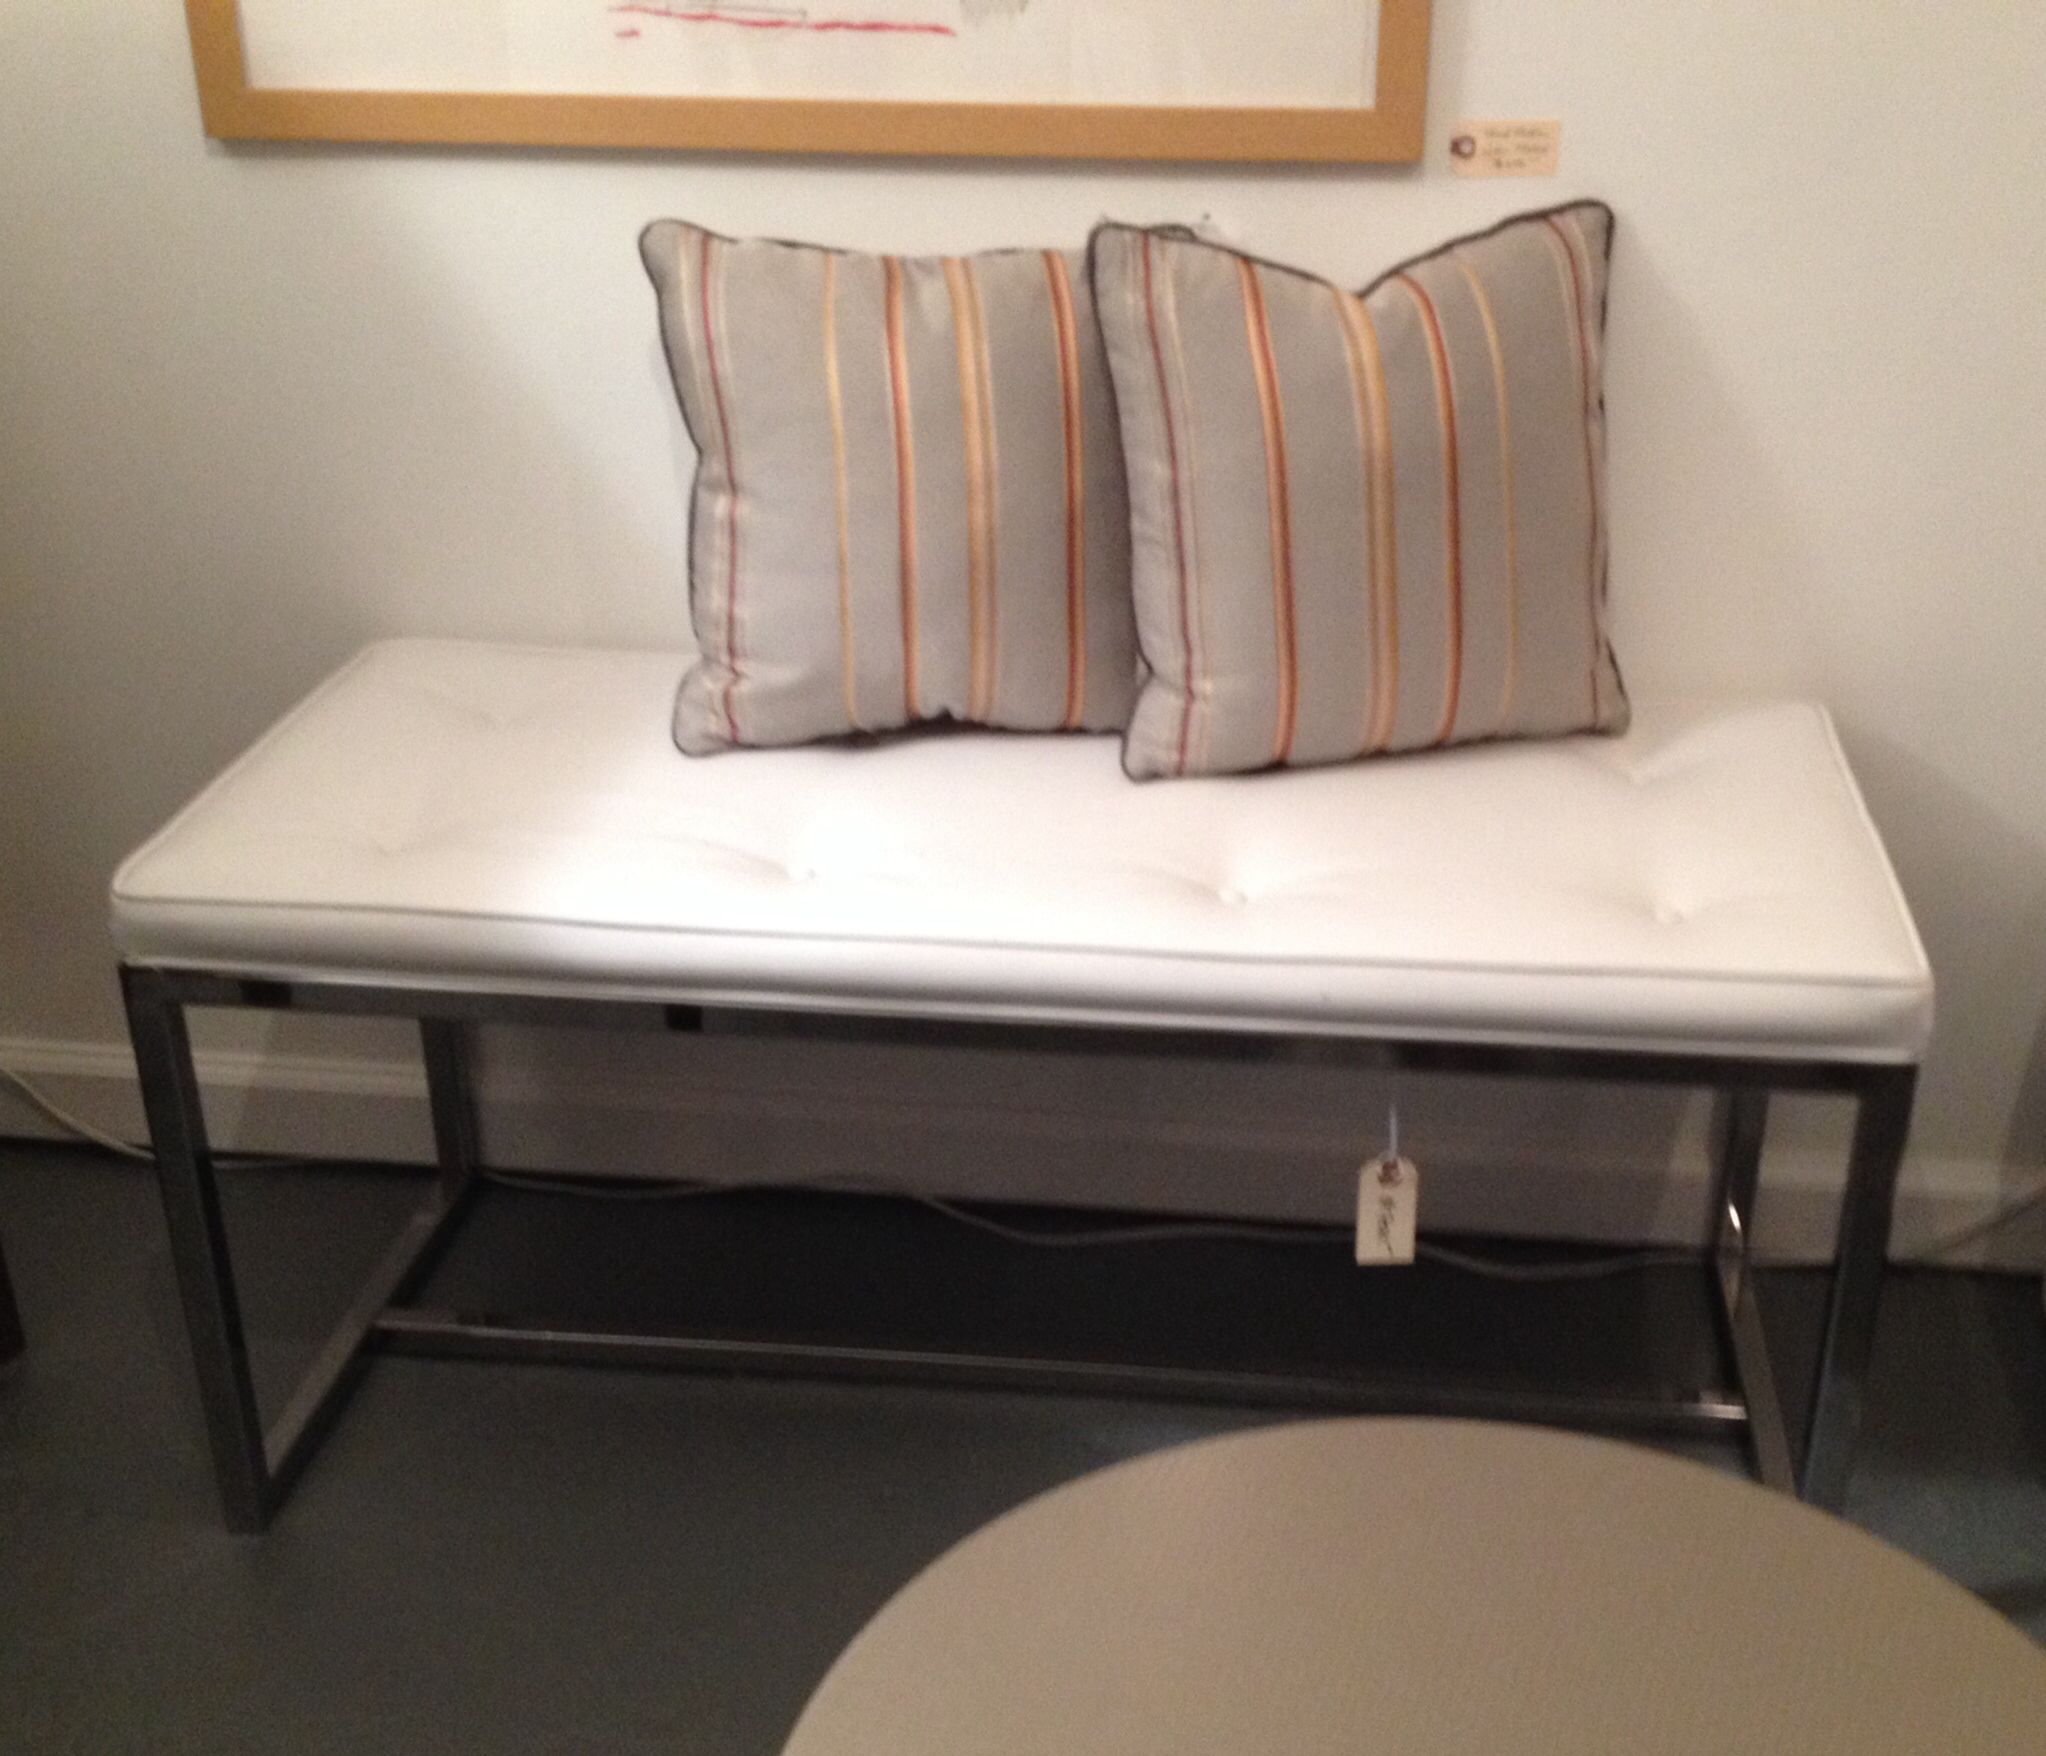 Midcentury modern steel bench with new vinyl upholstery